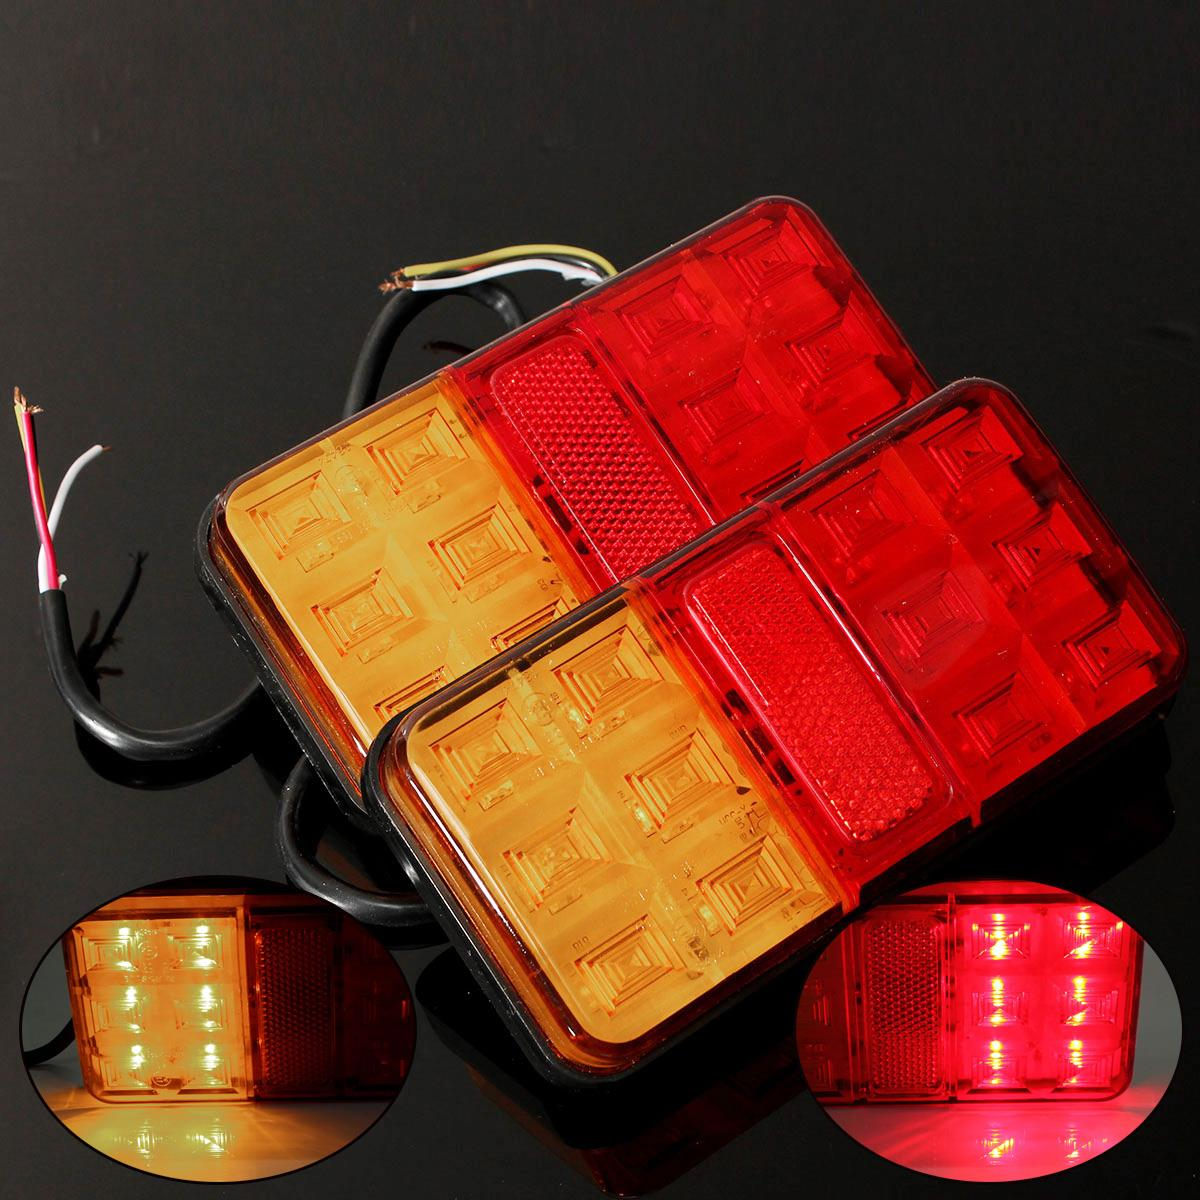 2x Trailer Truck Lorry Caravan LED Rear Tail Brake Stop Light Indicator Lamp 12V And Fittings tirol 13 to 7 pin adapter trailer 12v towbar towing caravan truck electrical converter n type plastic